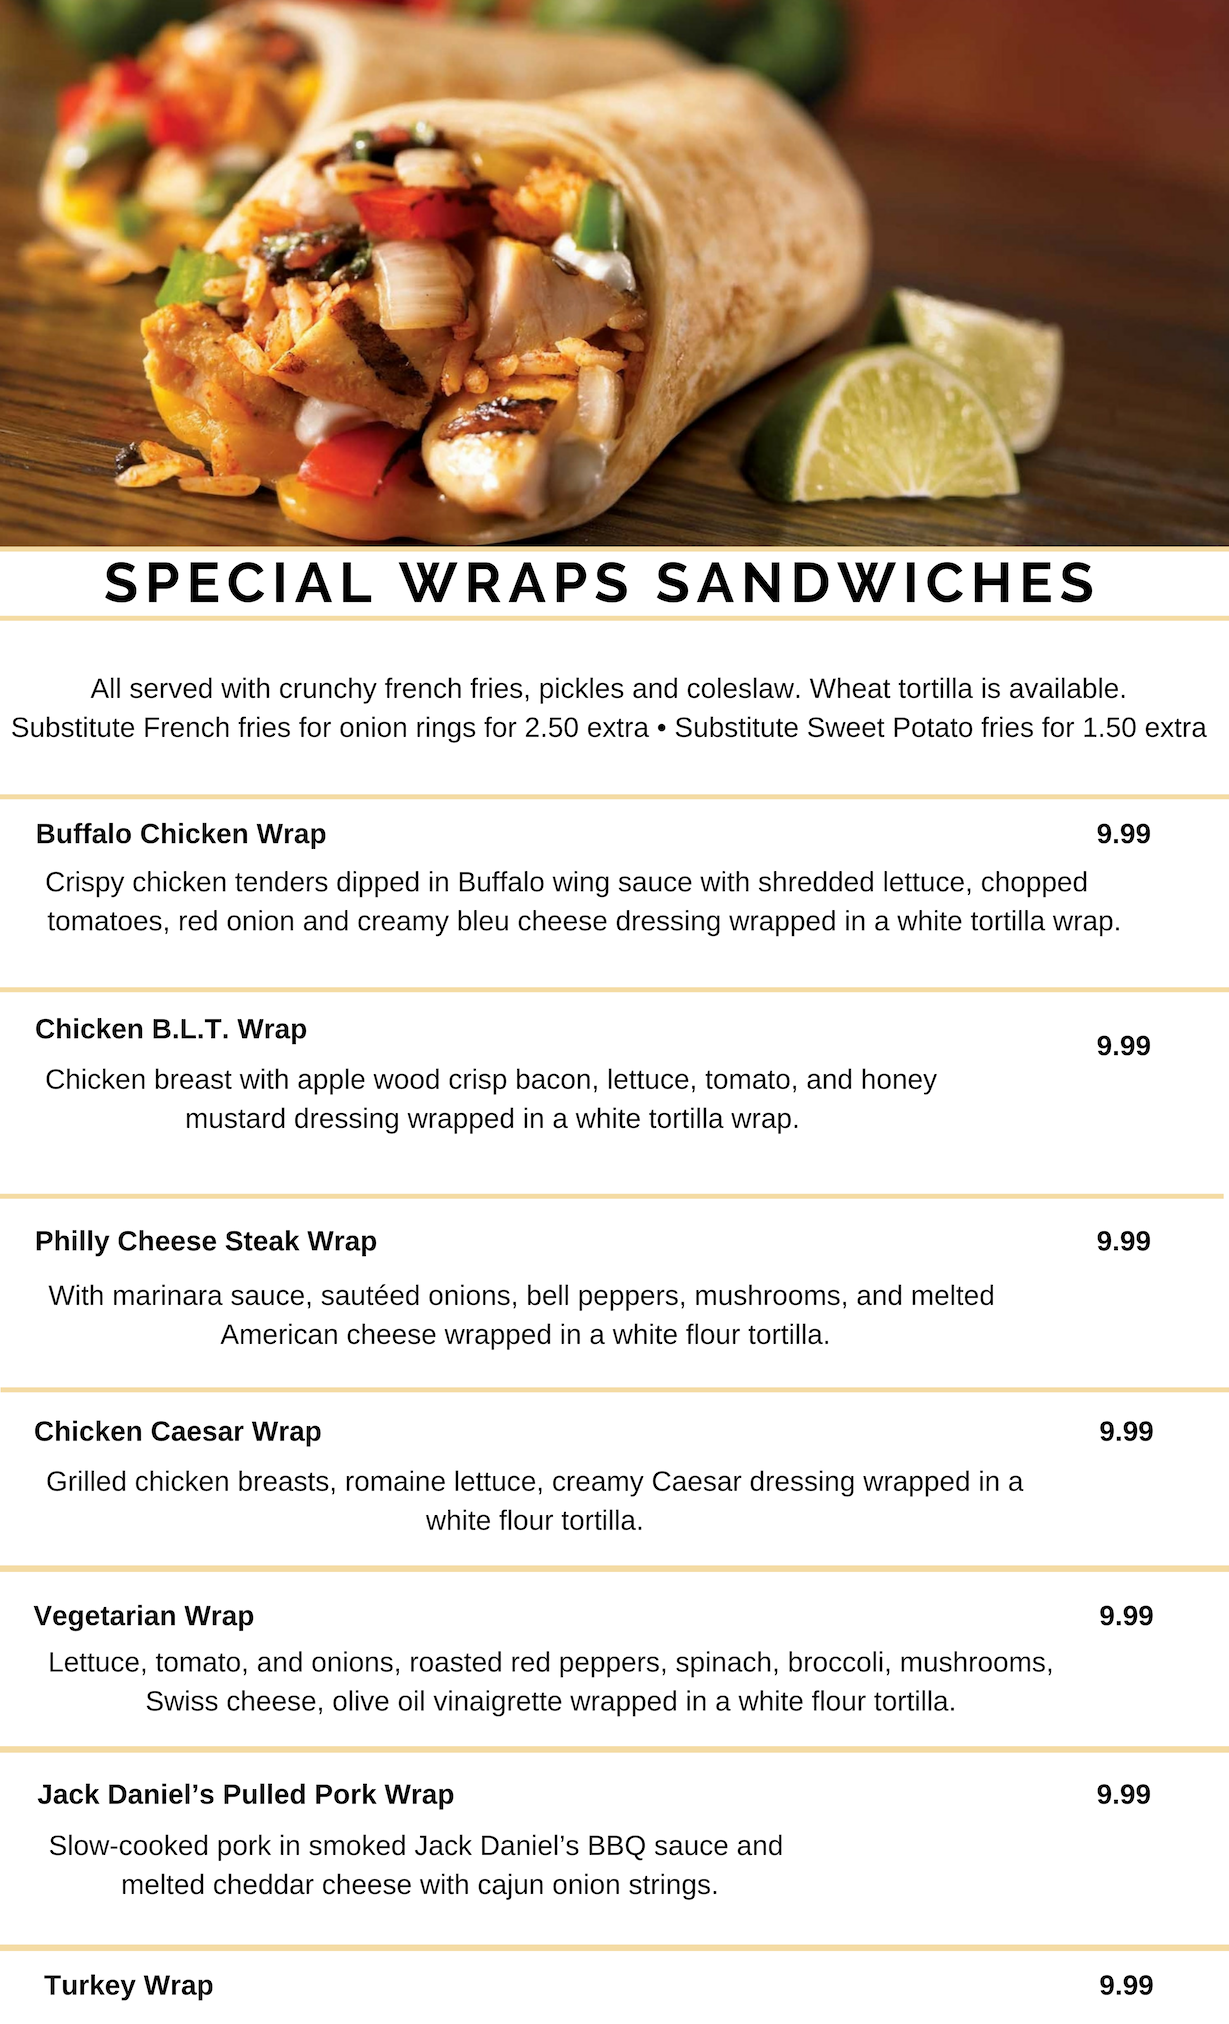 SPECIAL WRAPS SANDWICHES